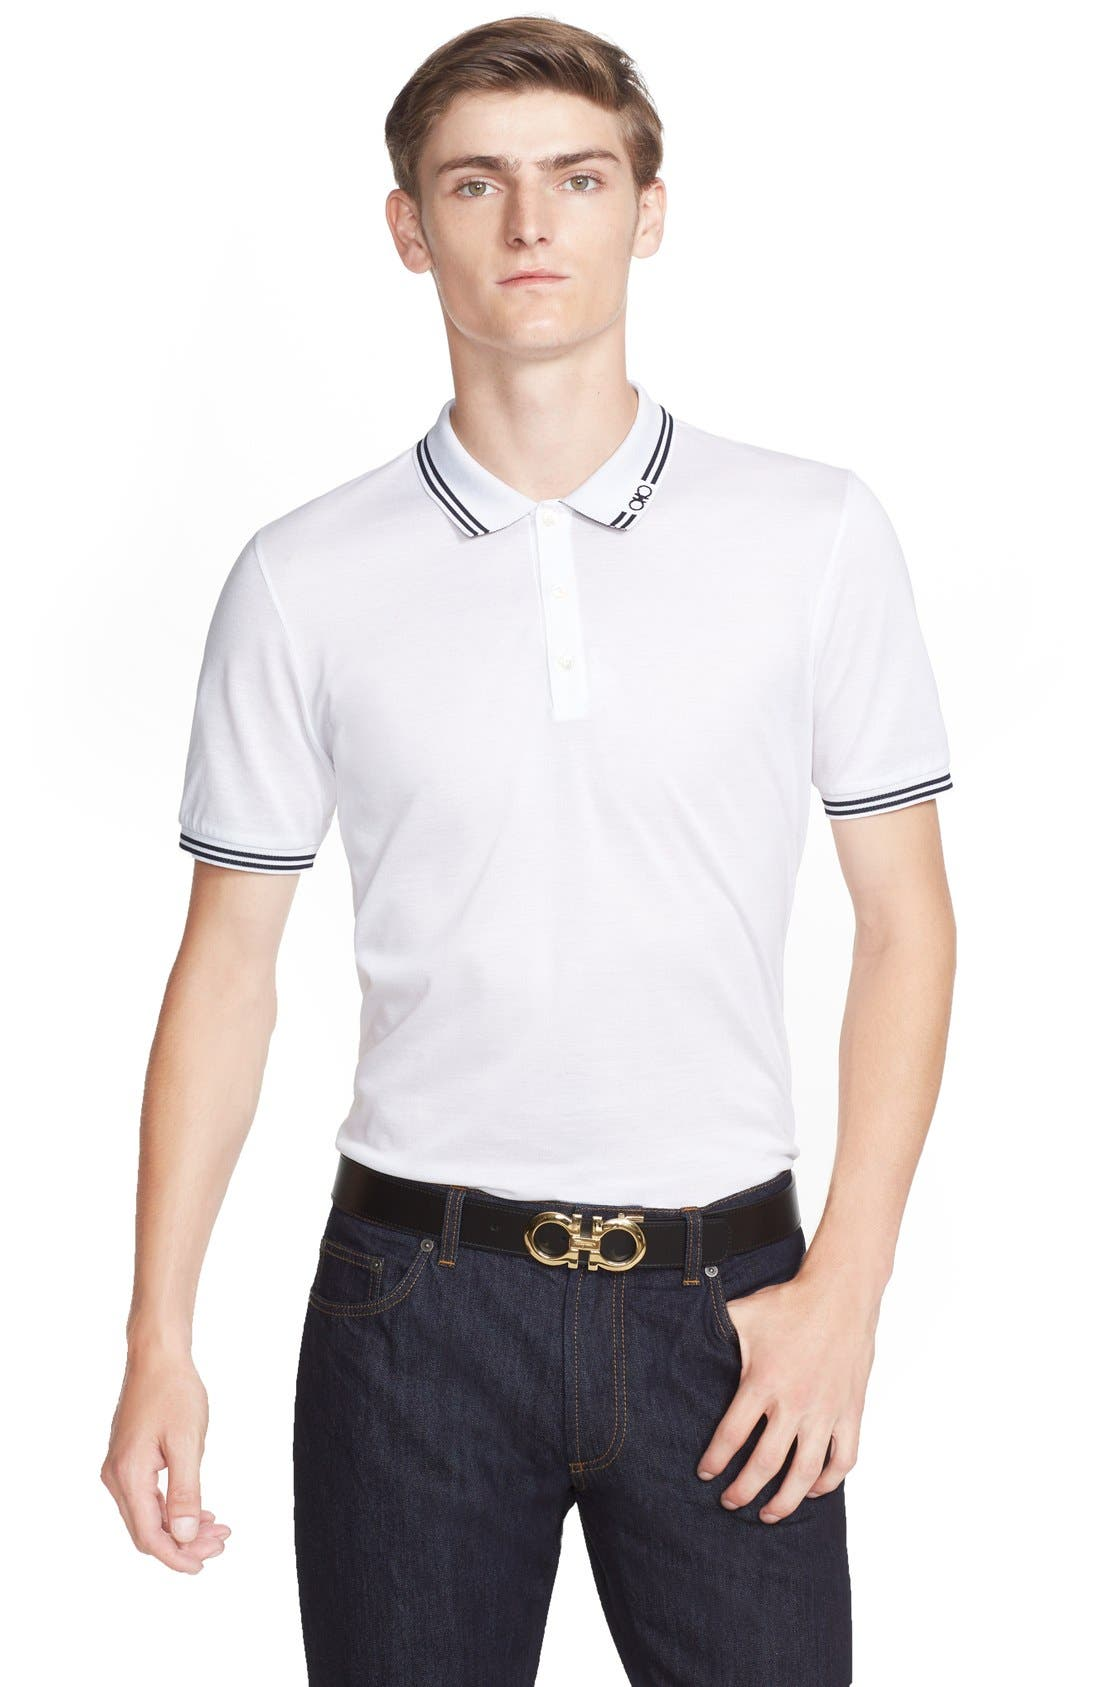 Alternate Image 1 Selected - Salvatore Ferragamo Piqué Trim Fit Polo